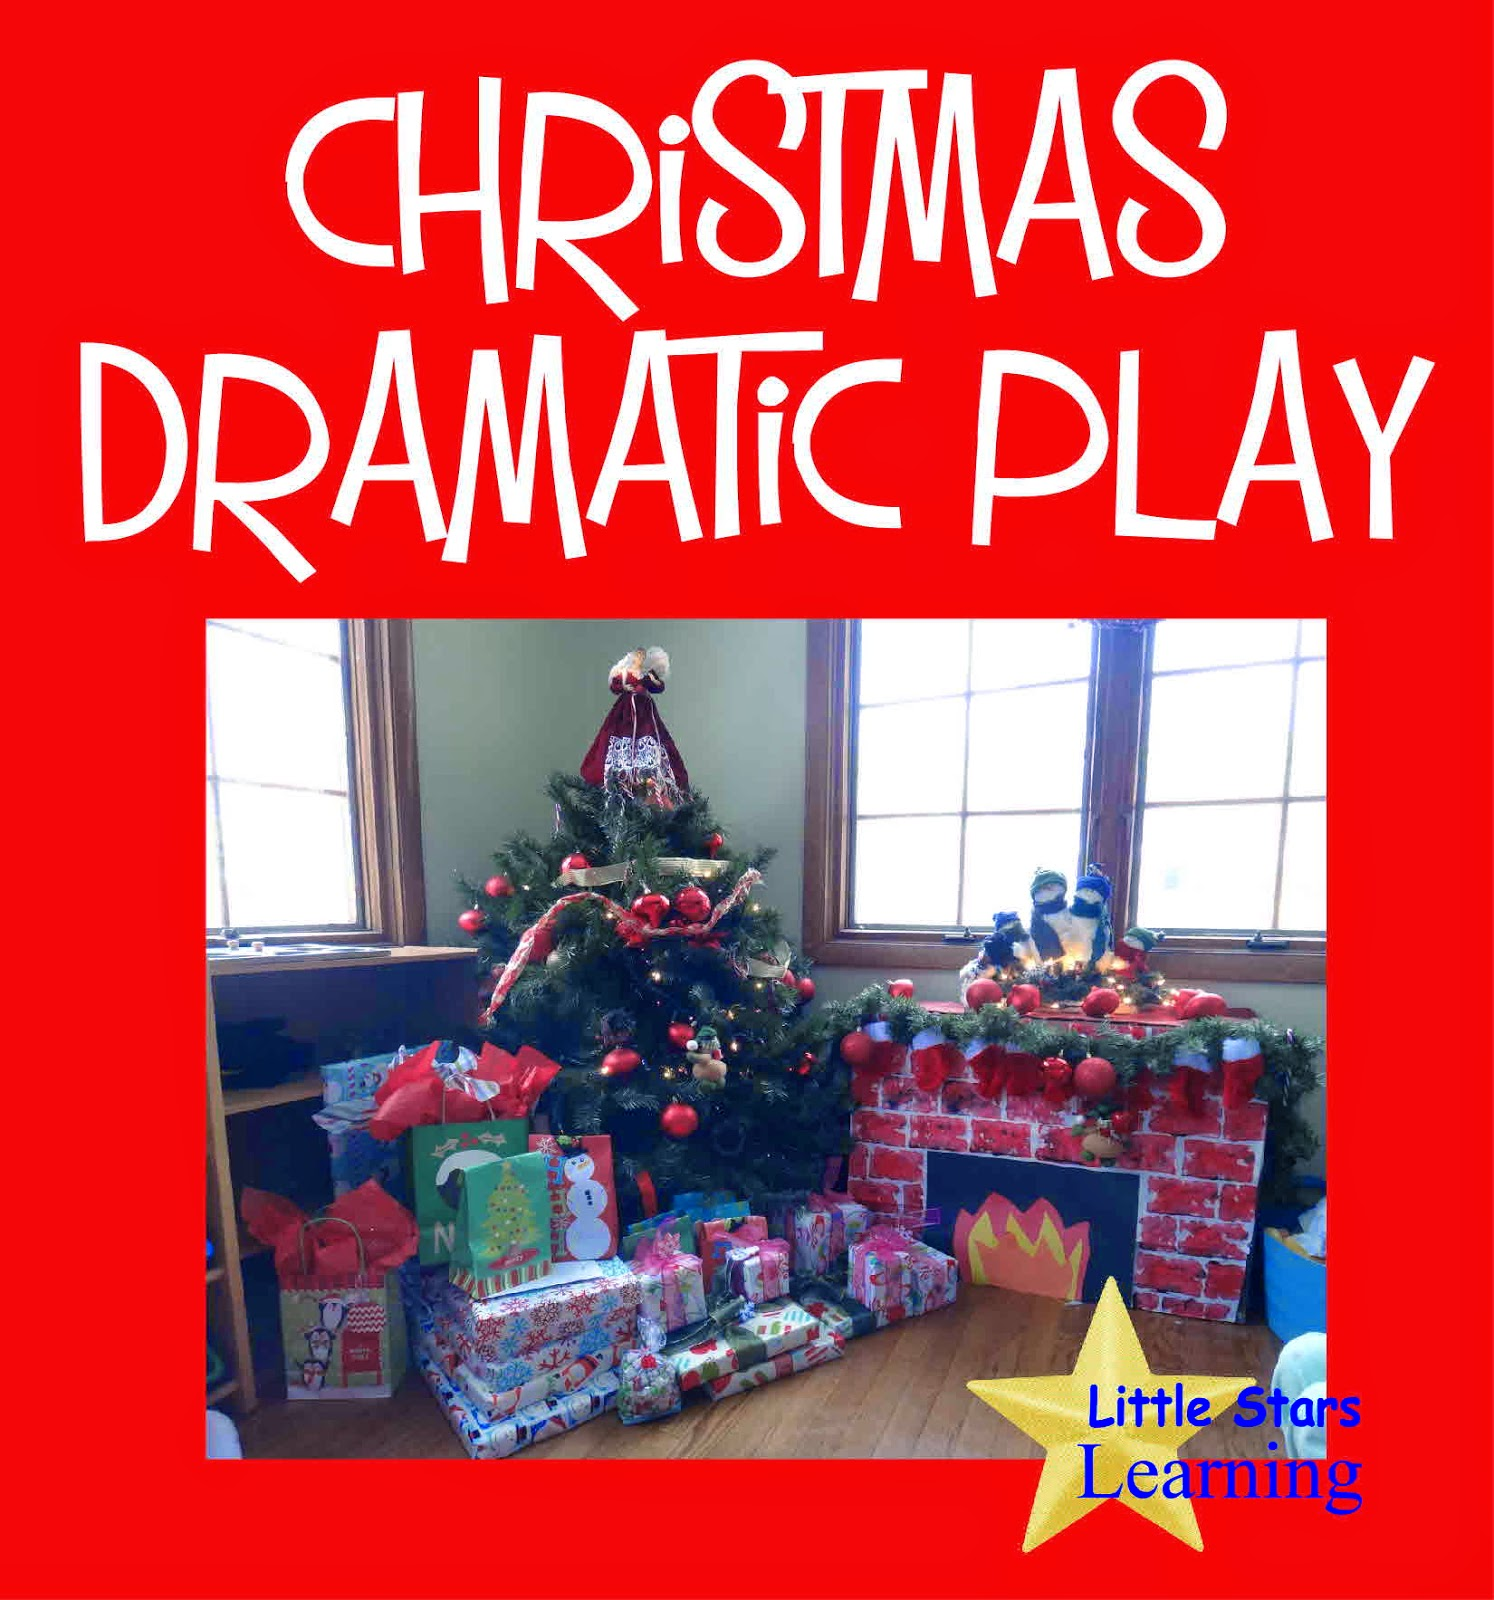 Little Stars Learning Christmas Dramatic Play